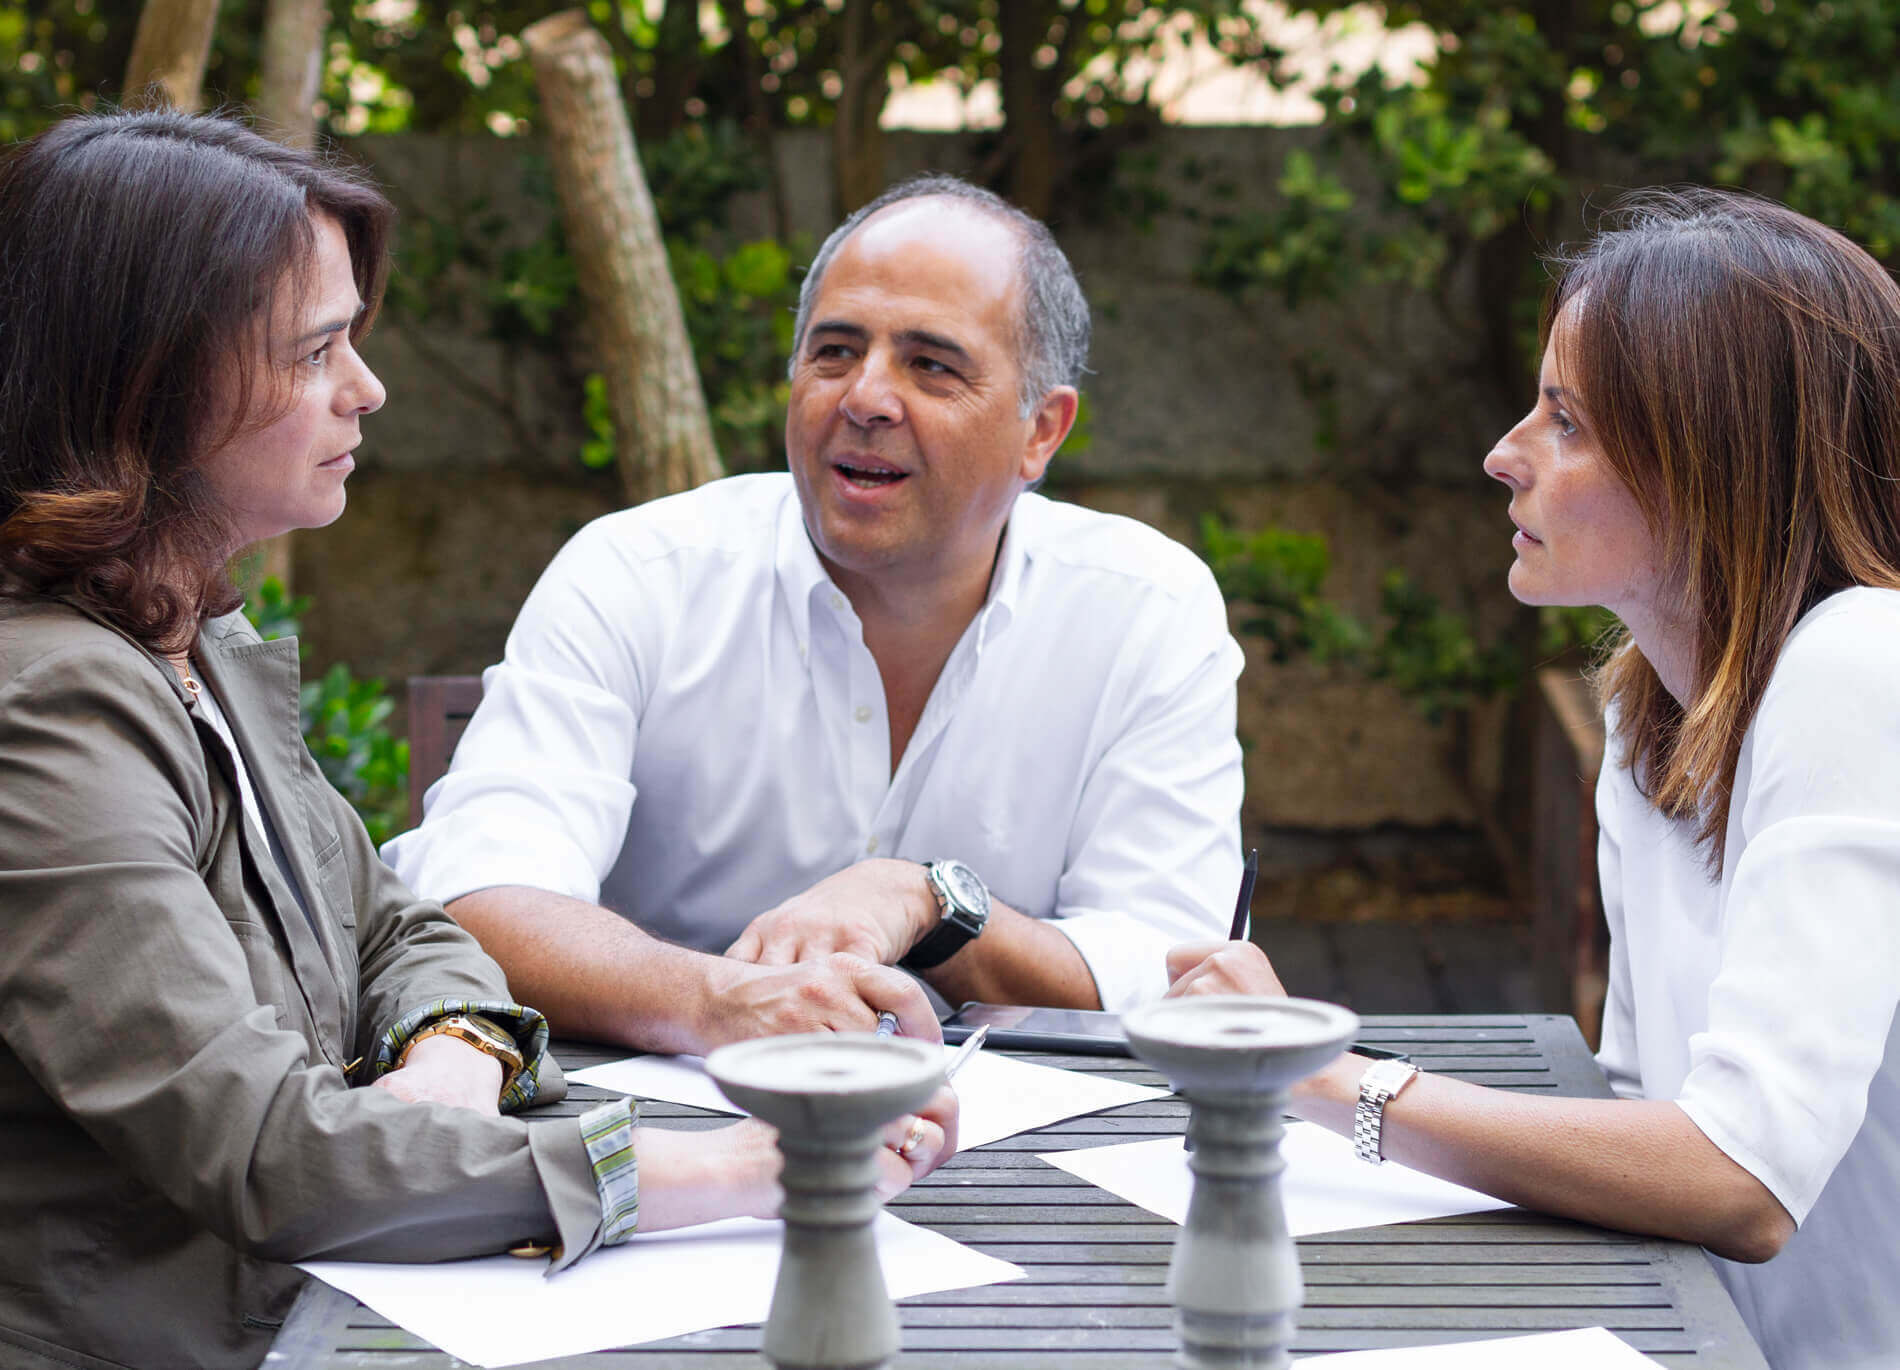 Marialma's team having a business meeting in the backyard.